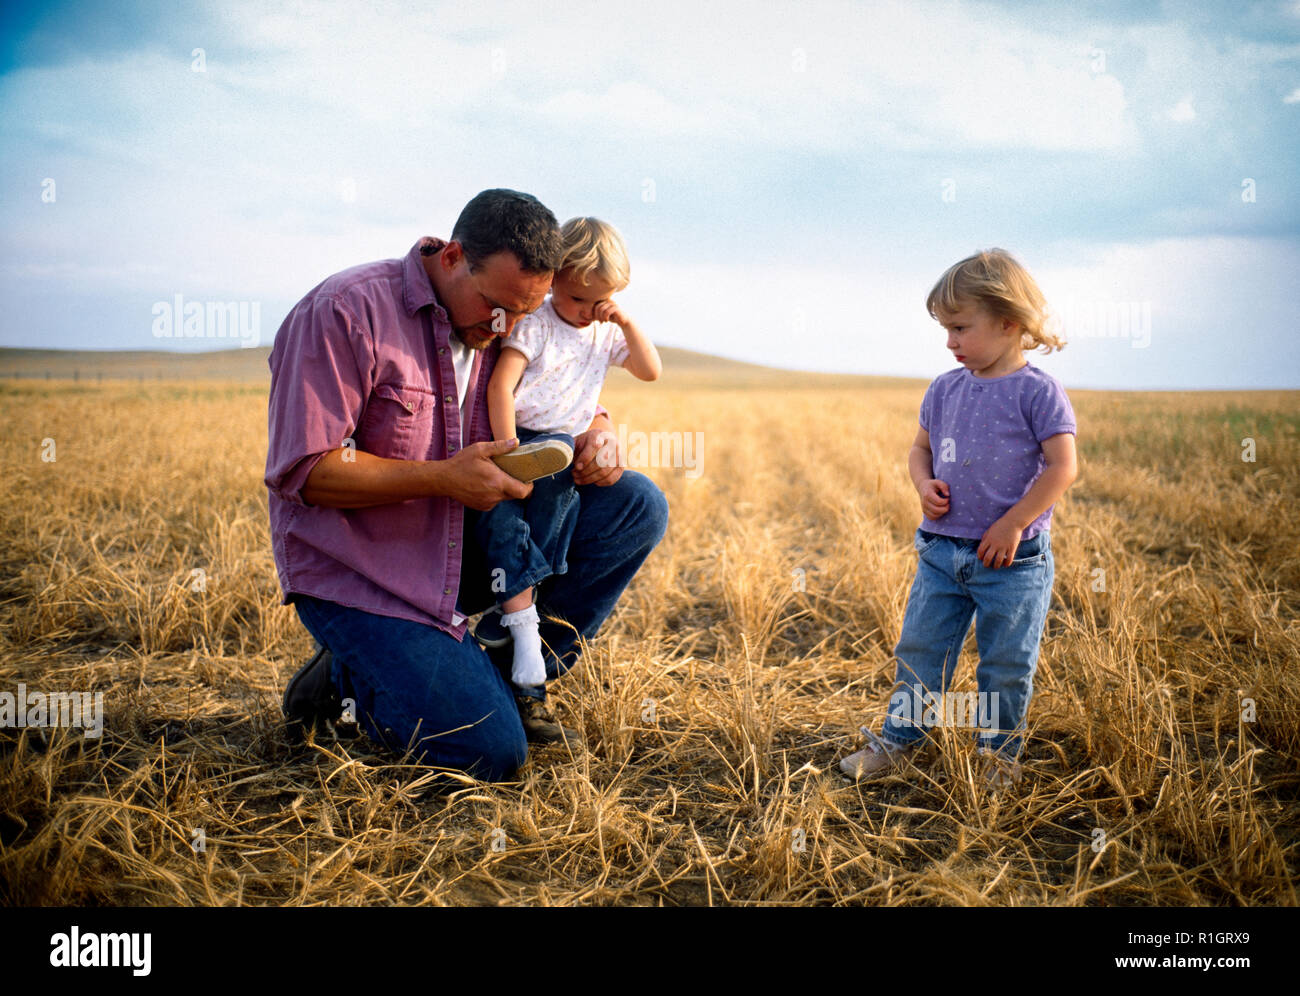 Man crouching in a field with his young daughters - Stock Image